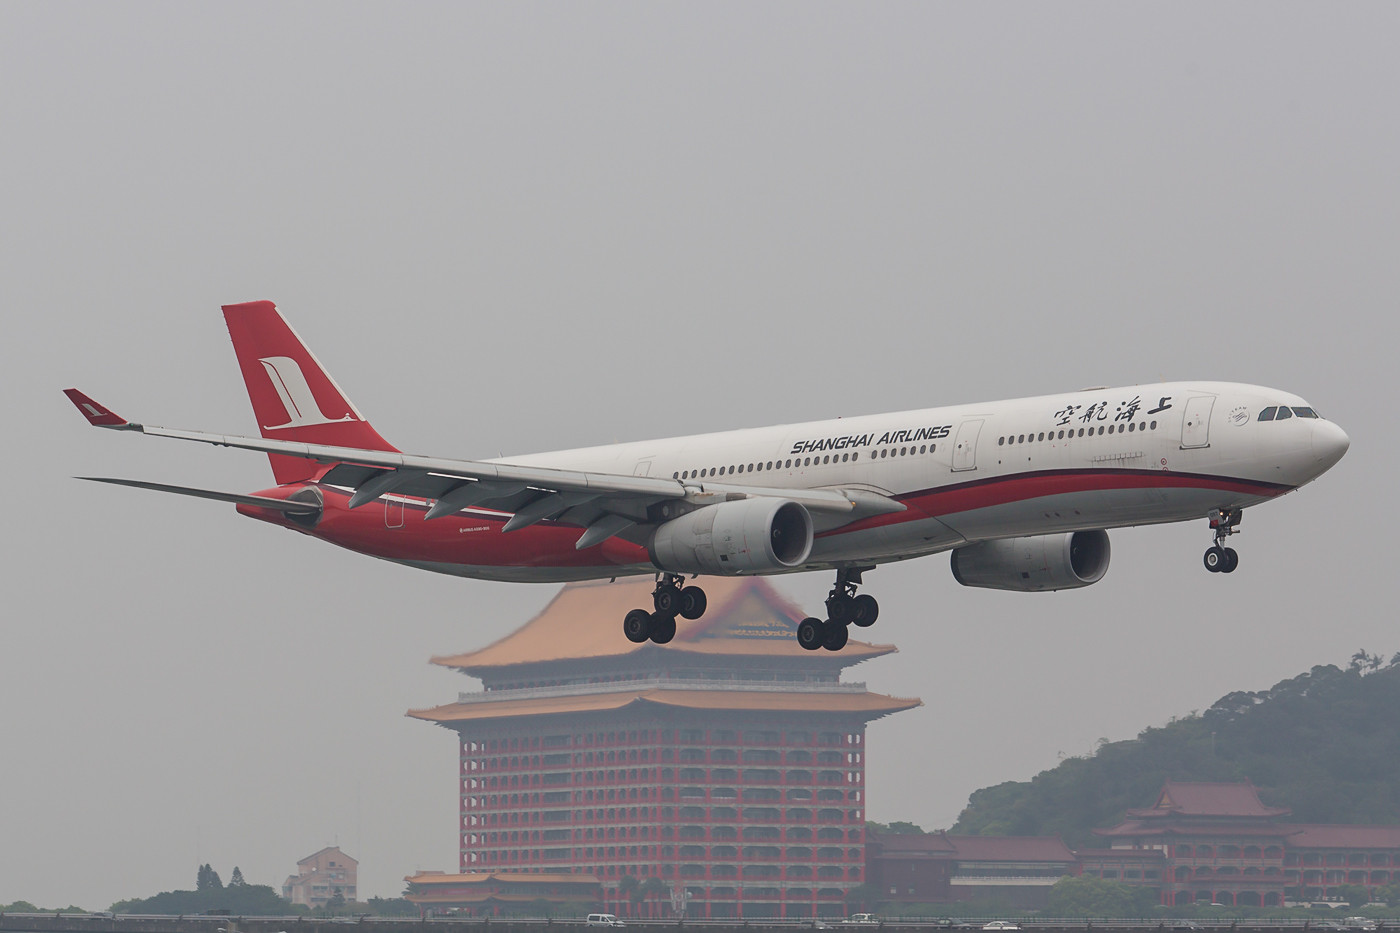 A 330 der Shanghai Air.